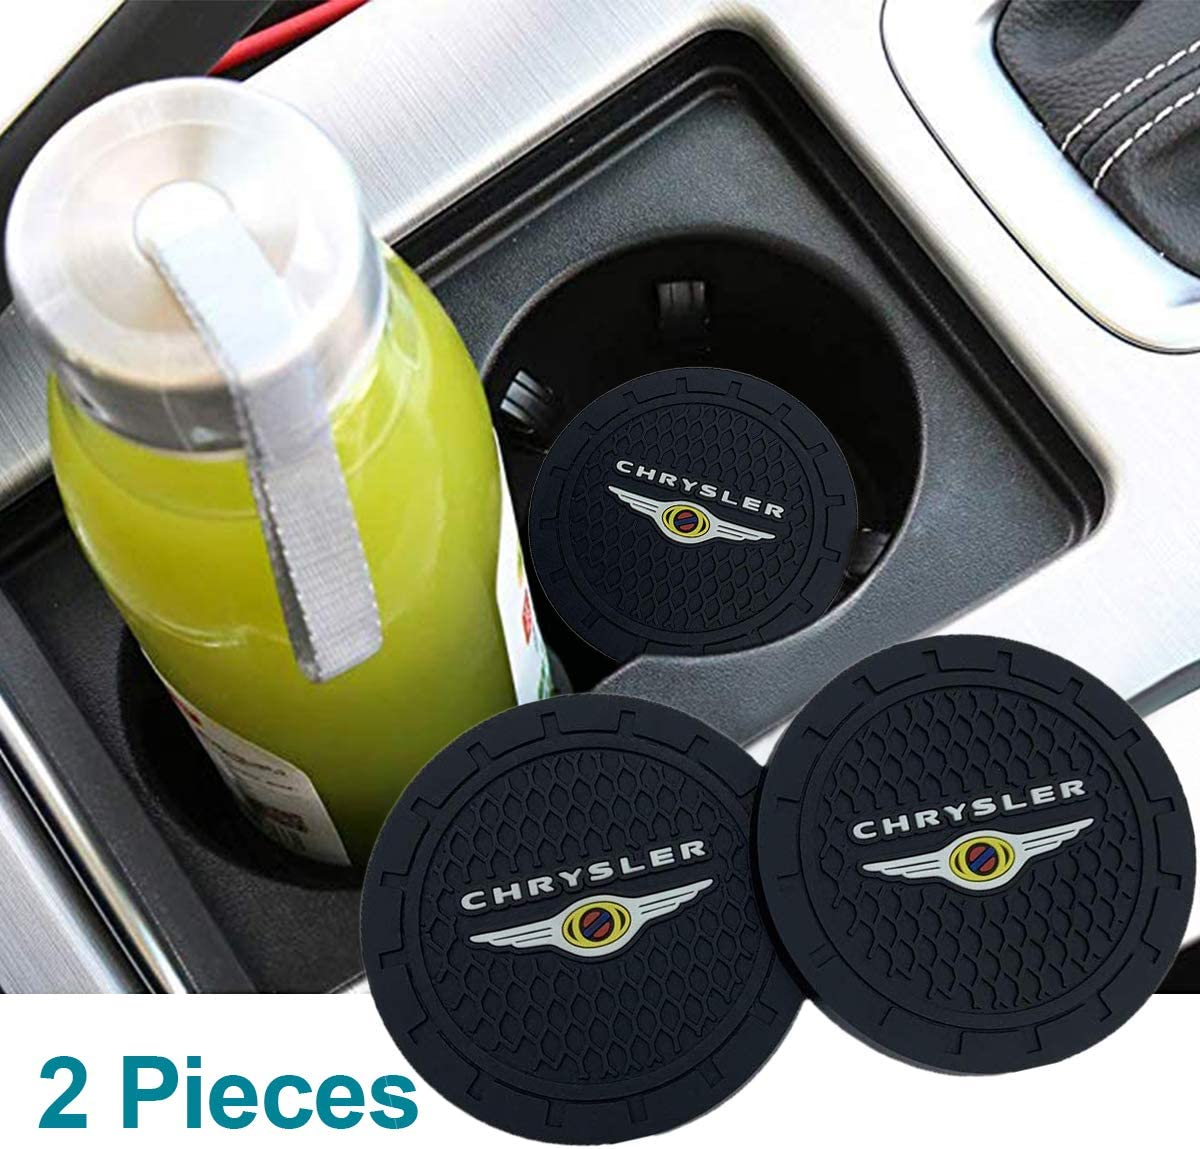 Auto sport 2.75 Inch Diameter Oval Tough Car Logo Vehicle Travel Auto Cup Holder Insert Coaster Can 2 Pcs Pack for Maserati Accessory